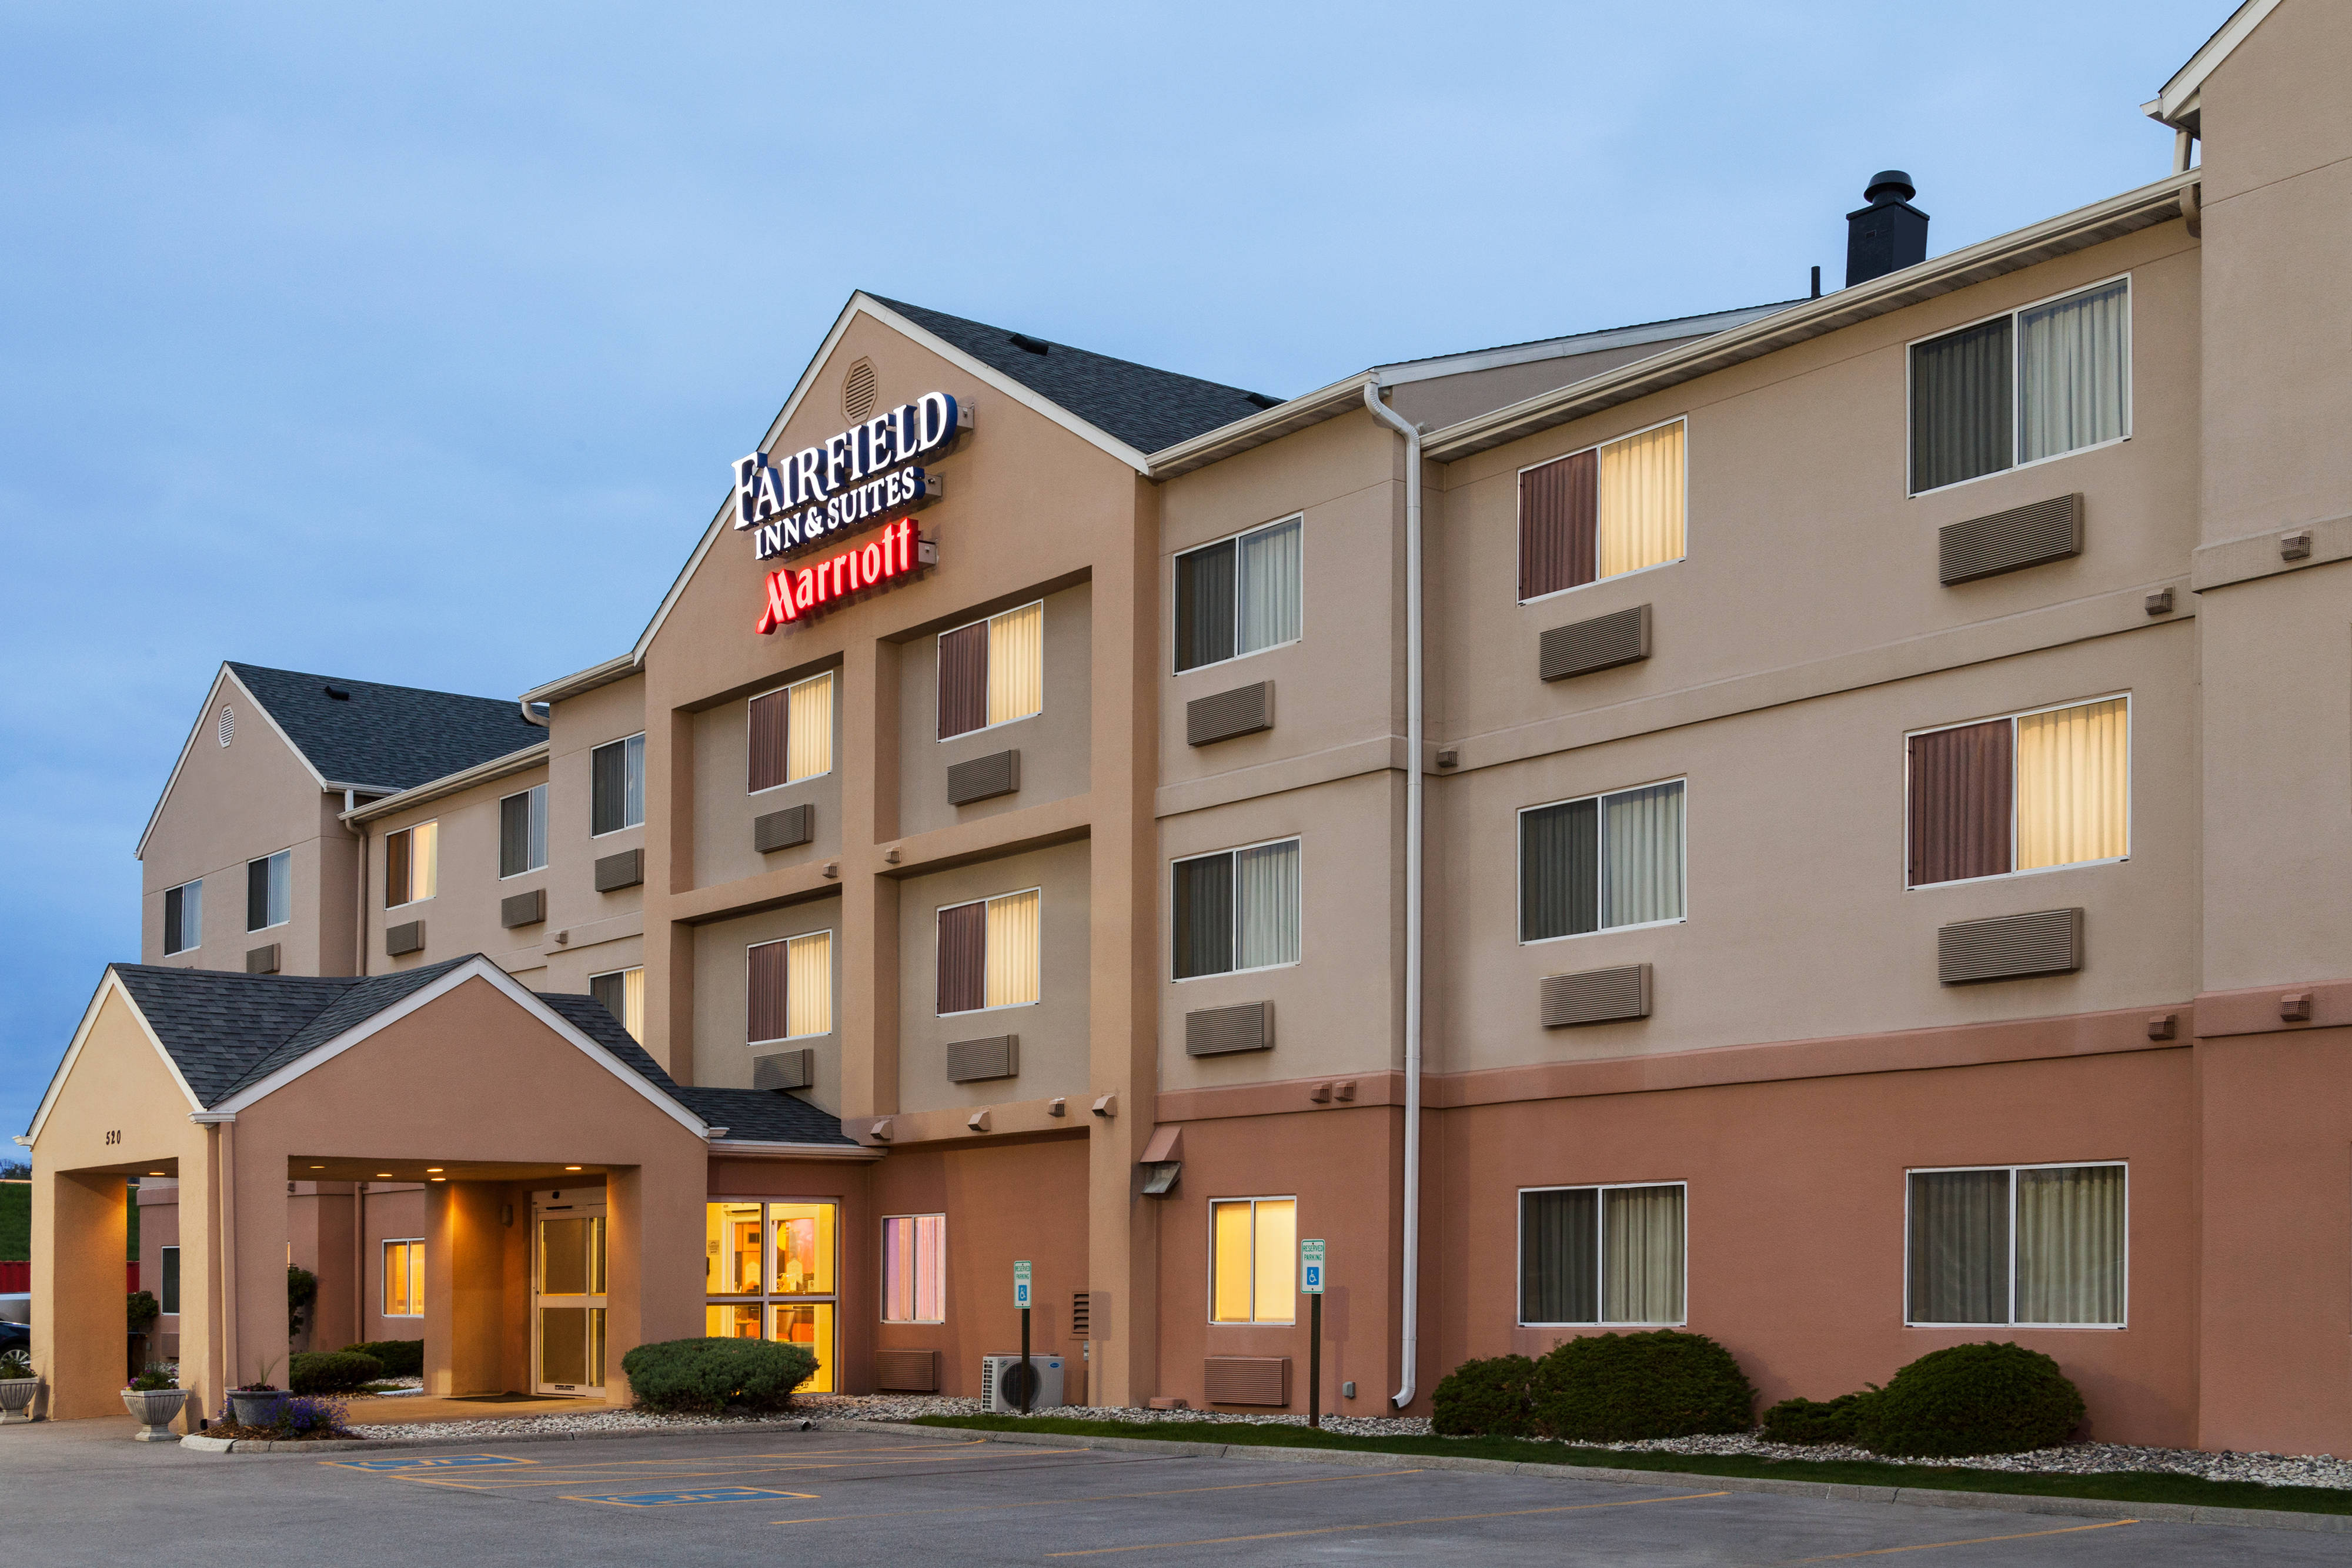 Fairfield Inn & Suites Omaha East/council Bluffs Ia